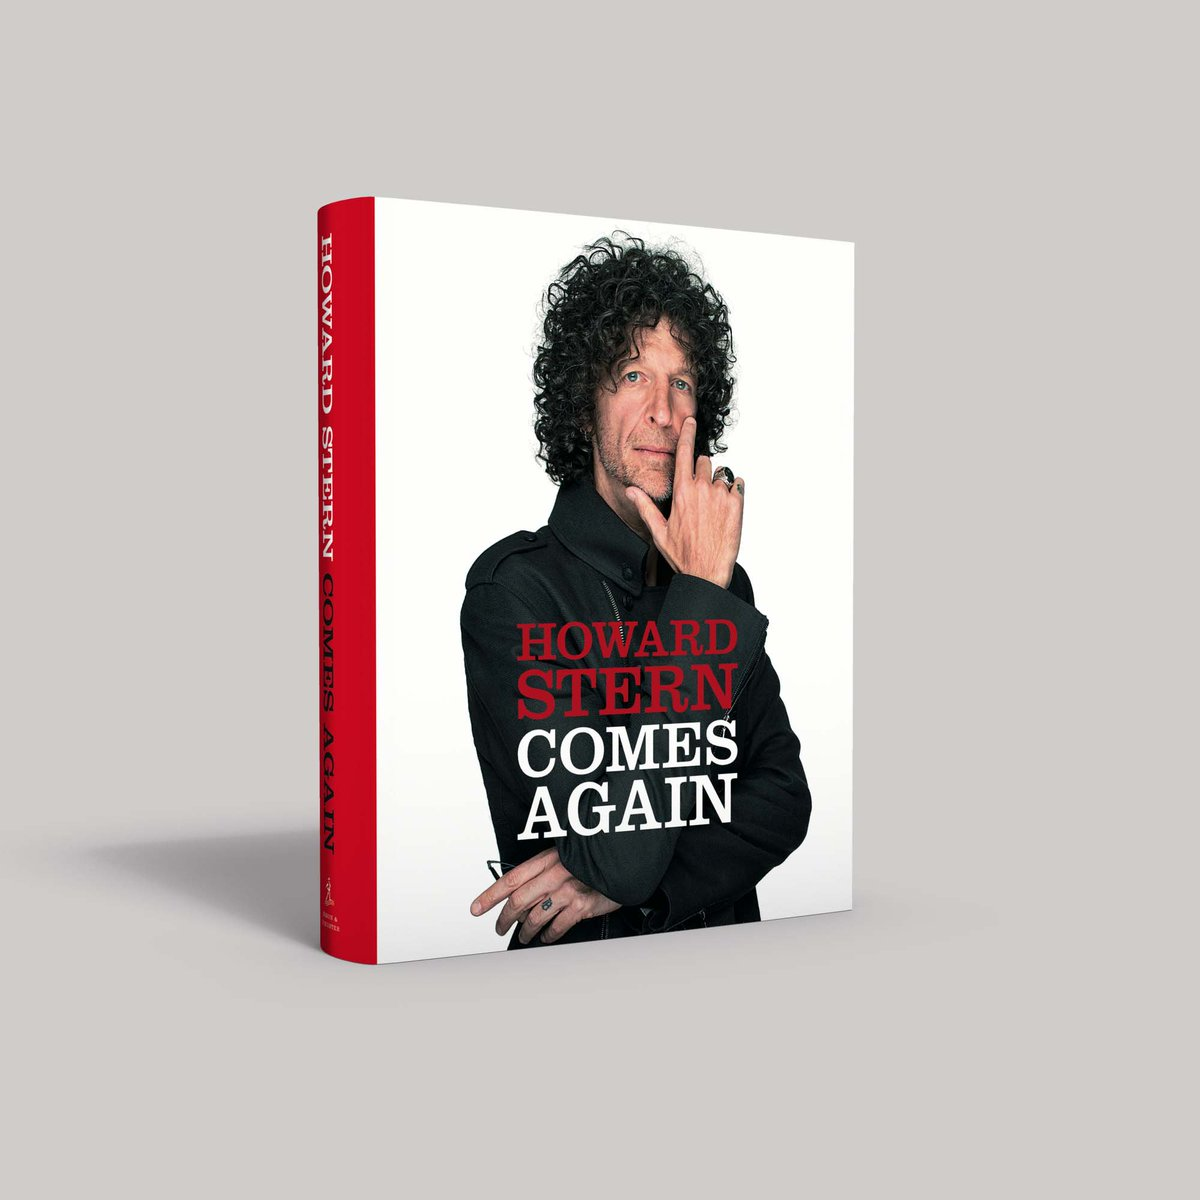 For months @HowardStern has been teasing a secret project and today he revealed the big news — #HowardSternComesAgain, his first book in more than 20 years, is due out May 14, 2019! Preorder it now: http://strn.it/r0og9T